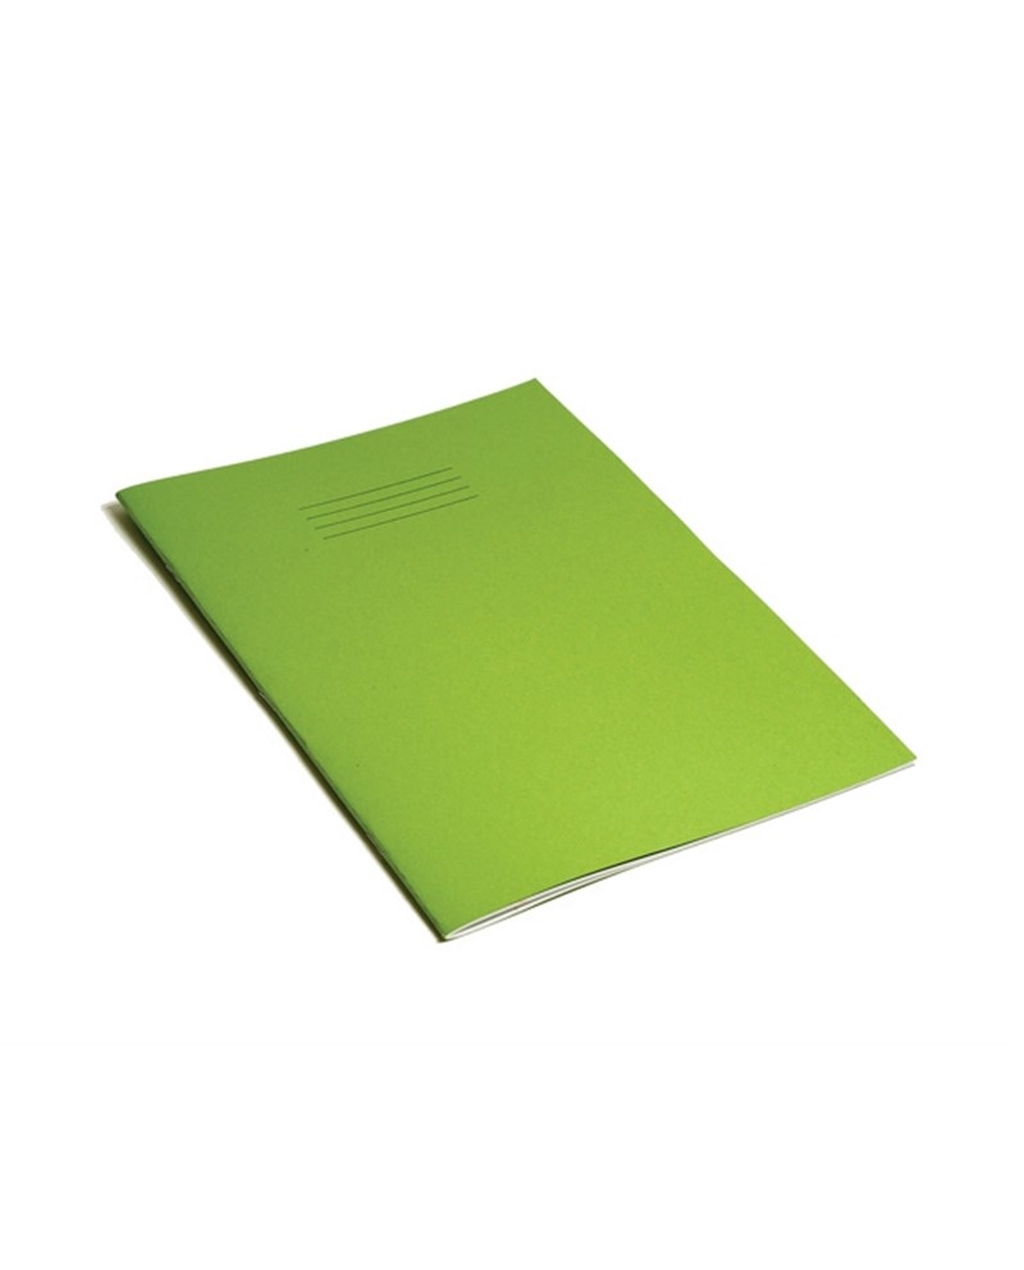 Exercise Book A4 (297 x 210mm) Light Green Cover Plain - No Ruling 64 Pages